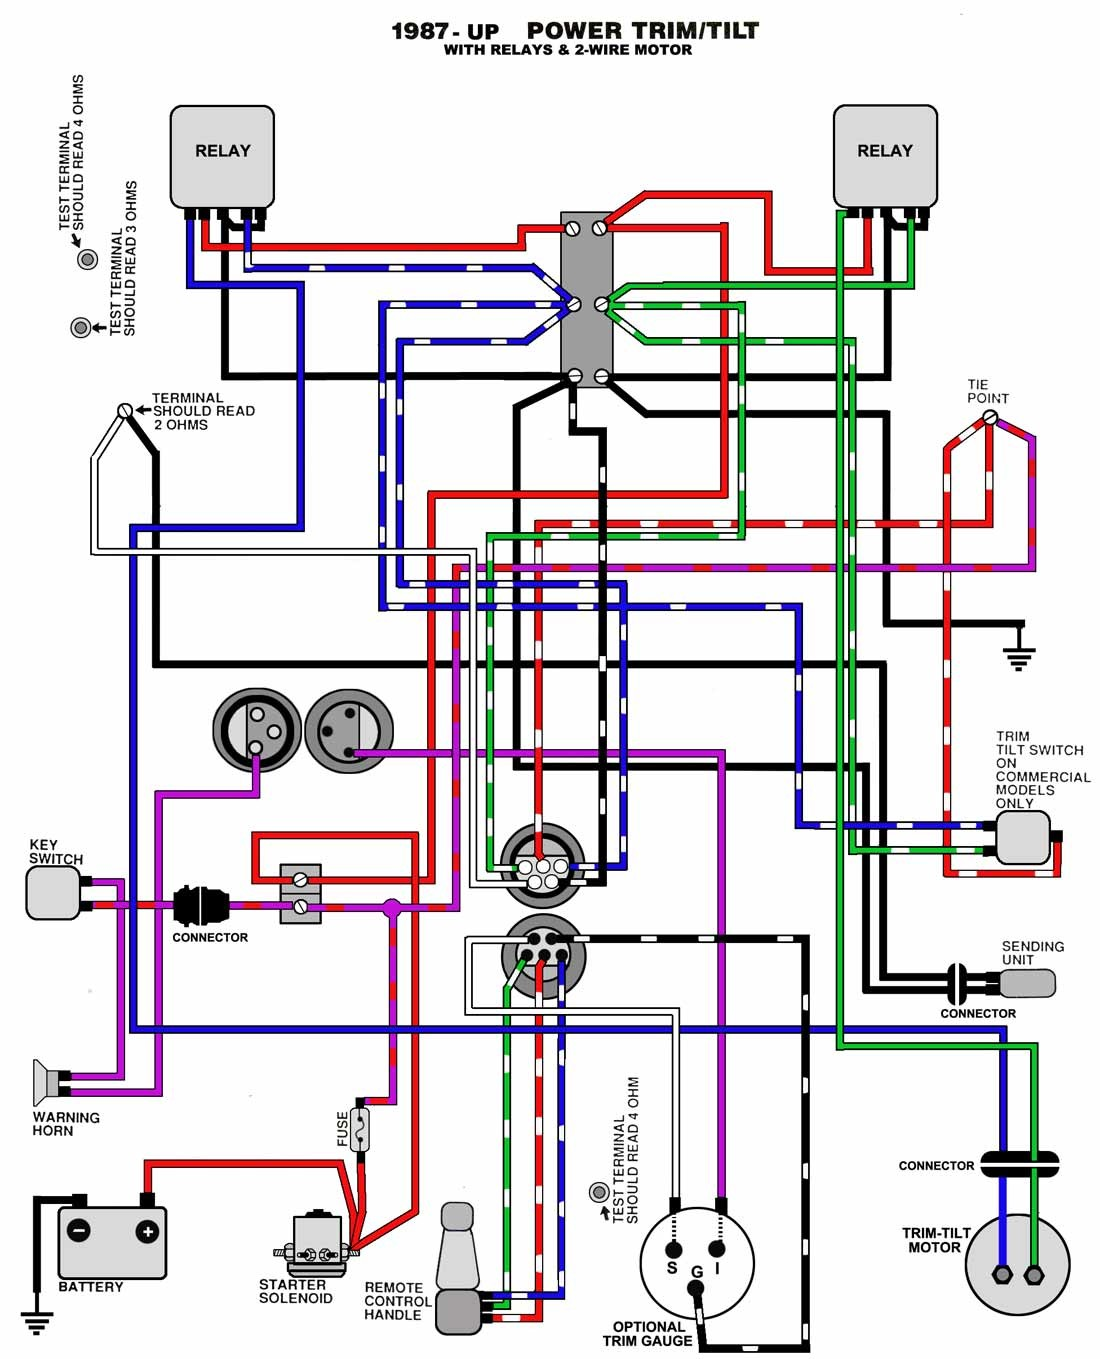 0d231204 Mercury Outboard Wiring Diagram - Tv.igesetze.de • on honda outboard parts lookup, suzuki outboard tachometer wiring diagram, 1974 mercury outboard ignition switch wiring diagram, outboard motor wiring diagram, honda outboards brand, honda outboard motor diagrams, 1986 mercury outboard throttle diagram, honda outboard wiring color code, mercury key switch wiring diagram,